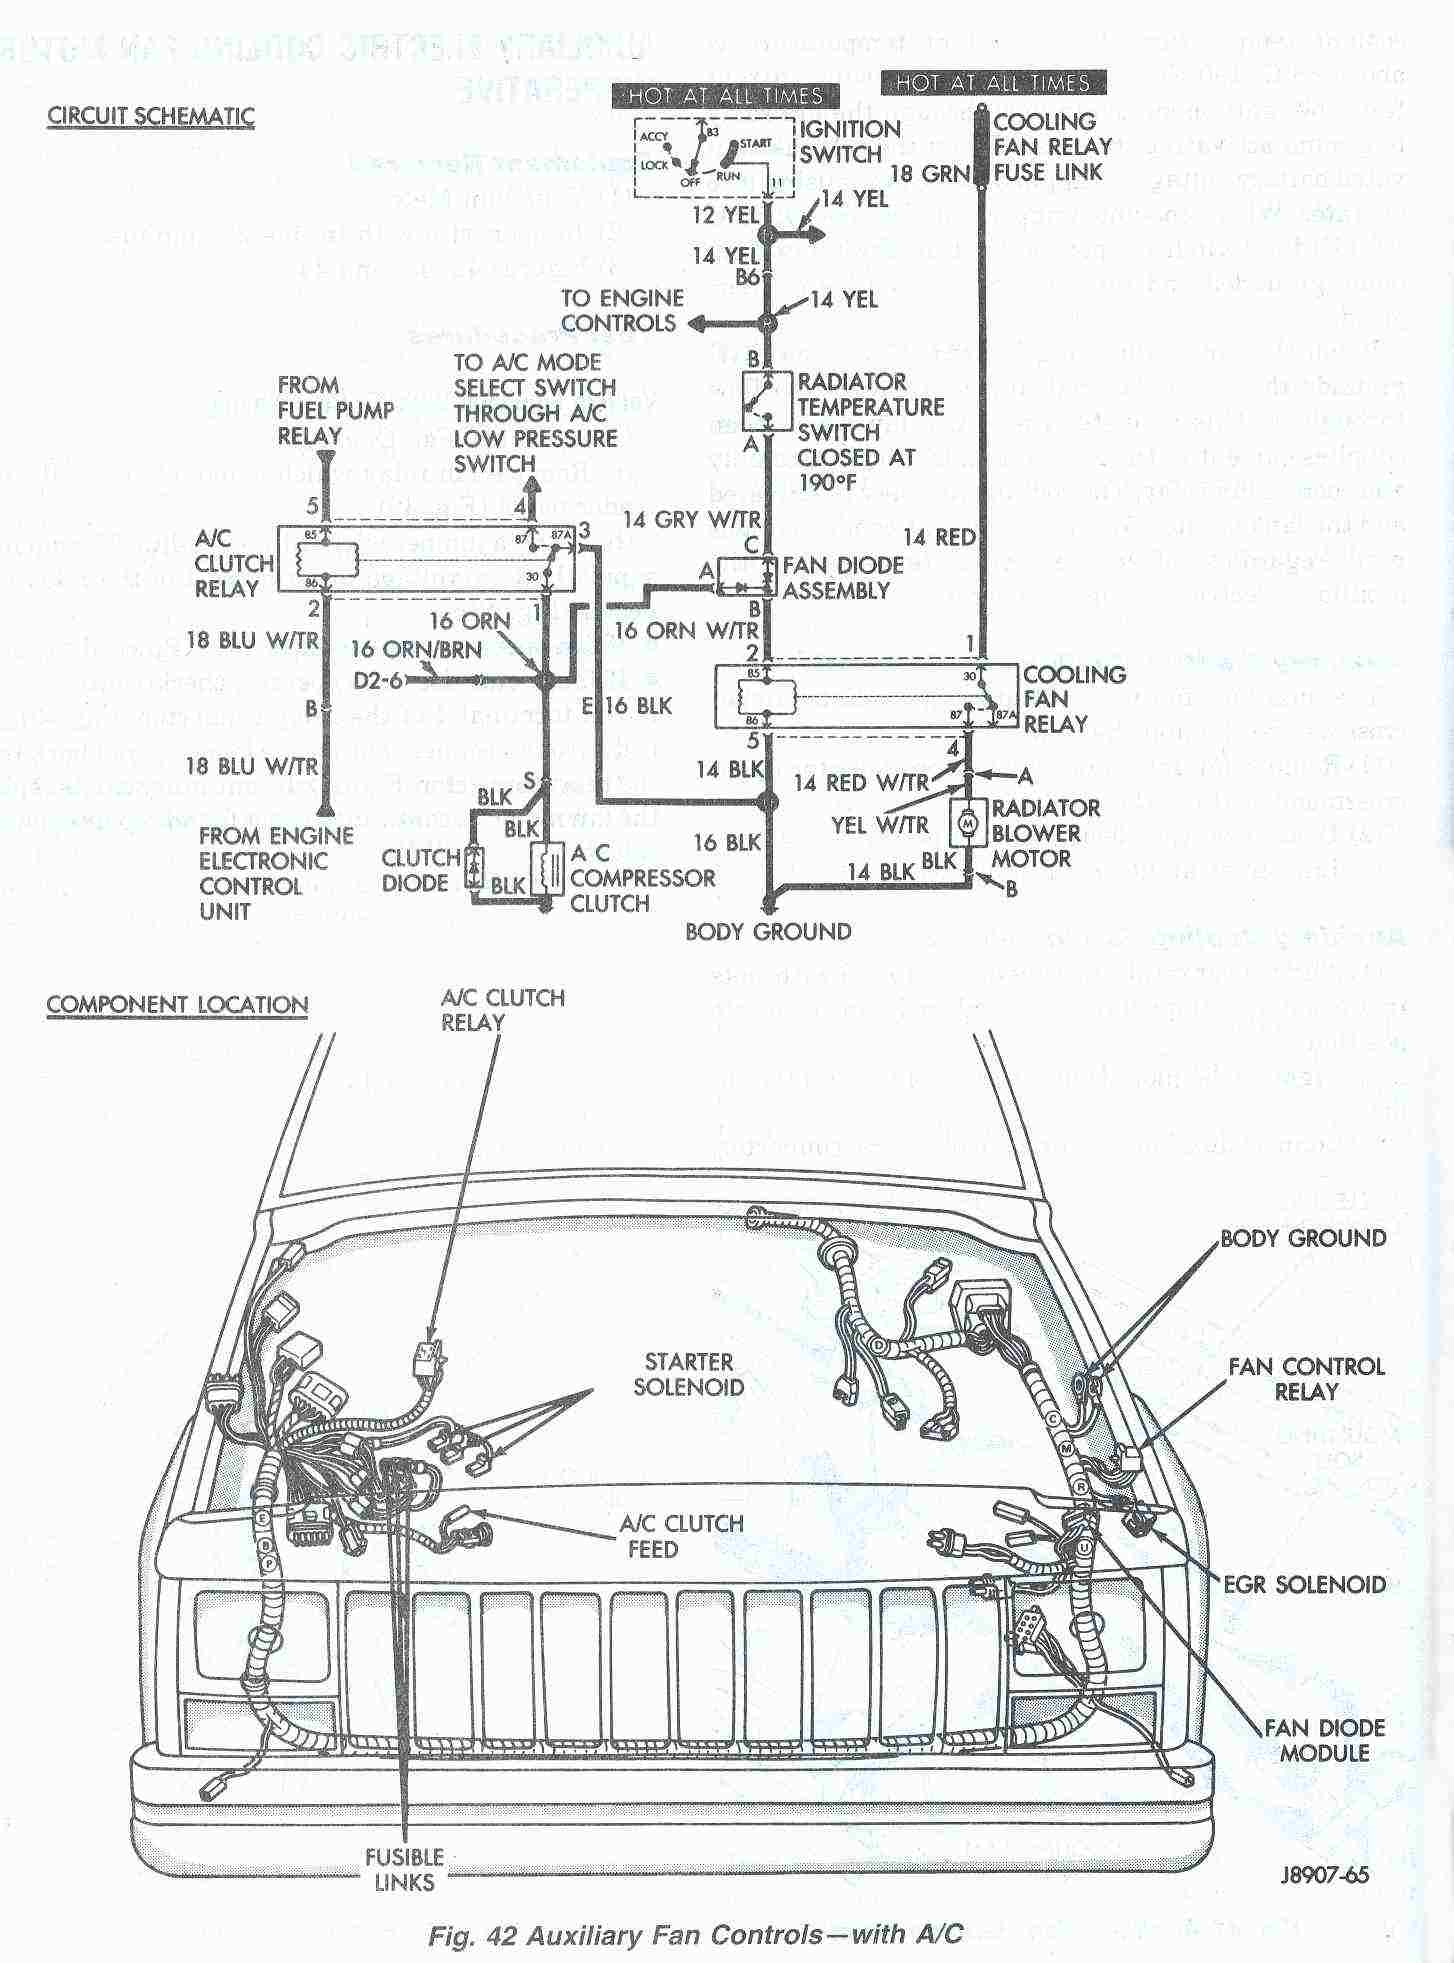 Auxiliary_Fan_Schematic_Fig_42 jeep cherokee cooling system electric cooling fan 1999 jeep cherokee wiring diagram at reclaimingppi.co